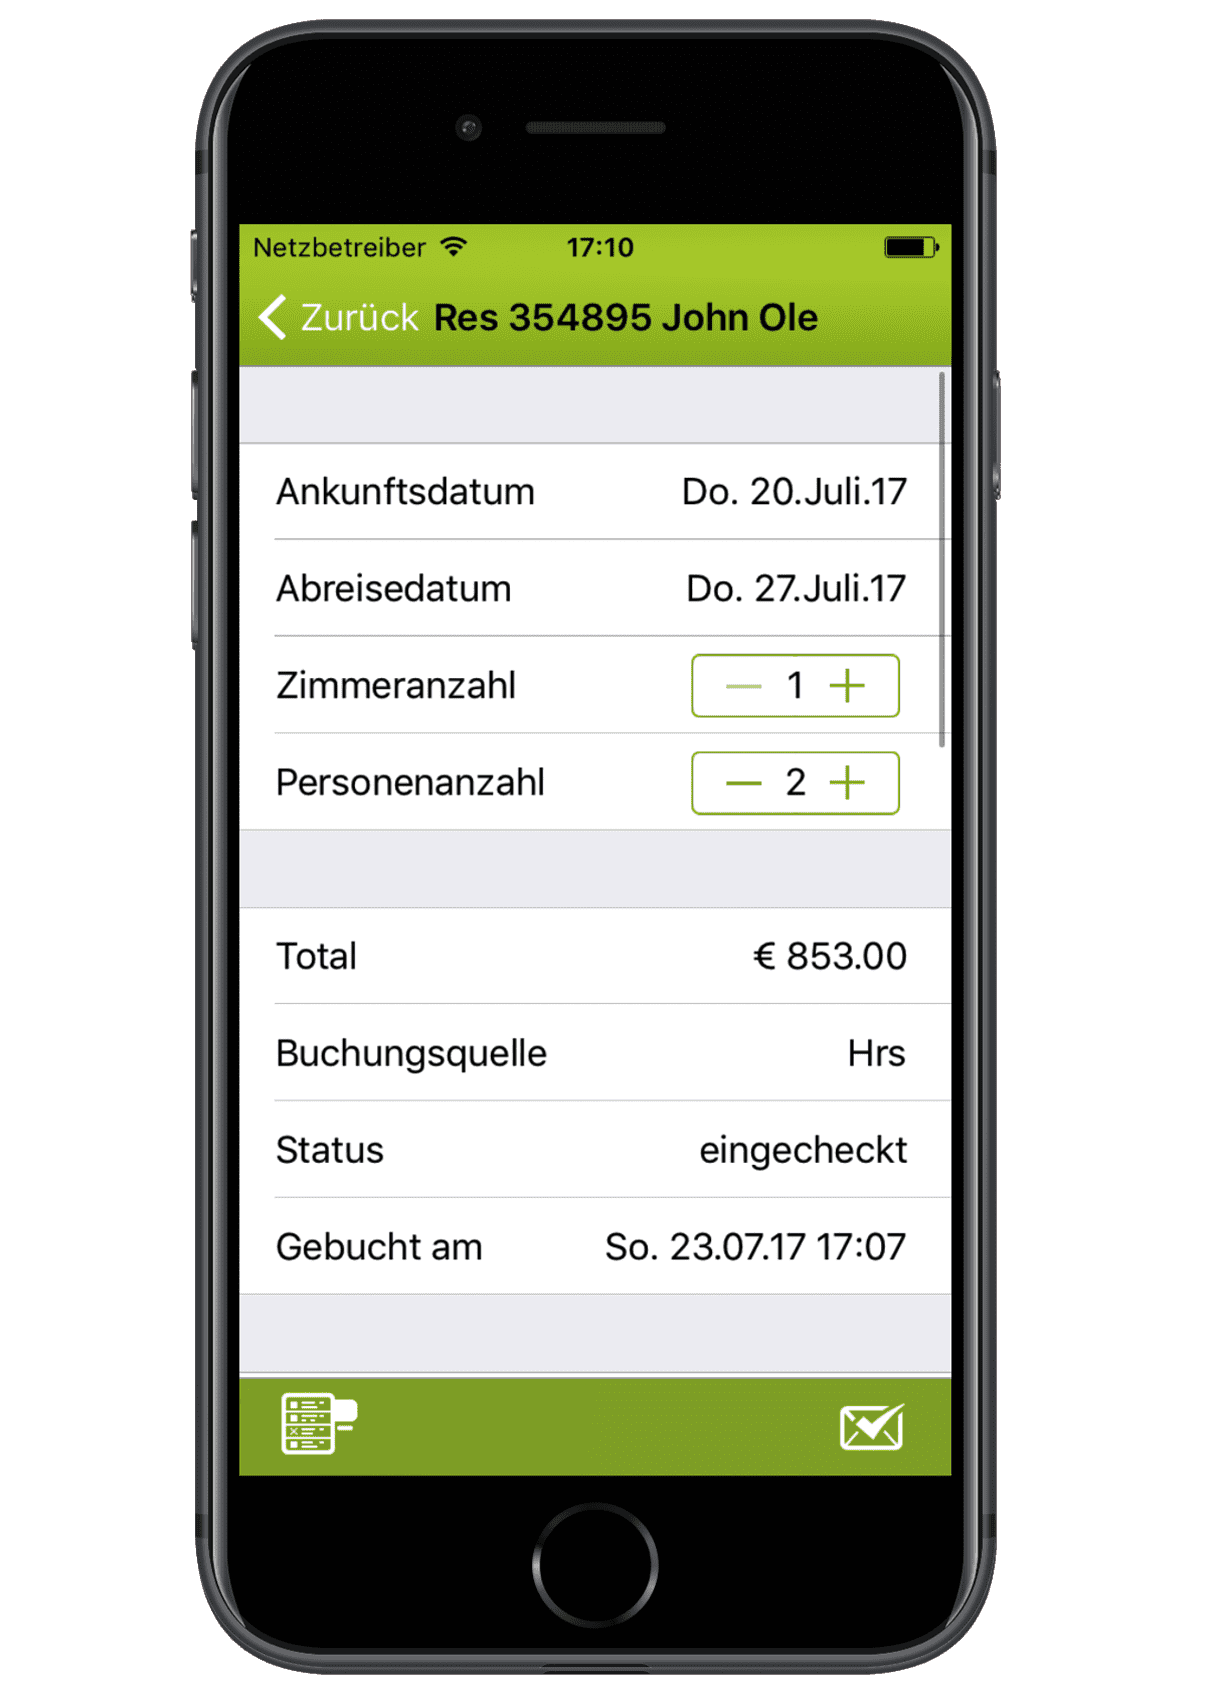 igumbi Hotelsoftware iOS/ iPhone App: eine neue Reservierung anlegen am iPhone 7.